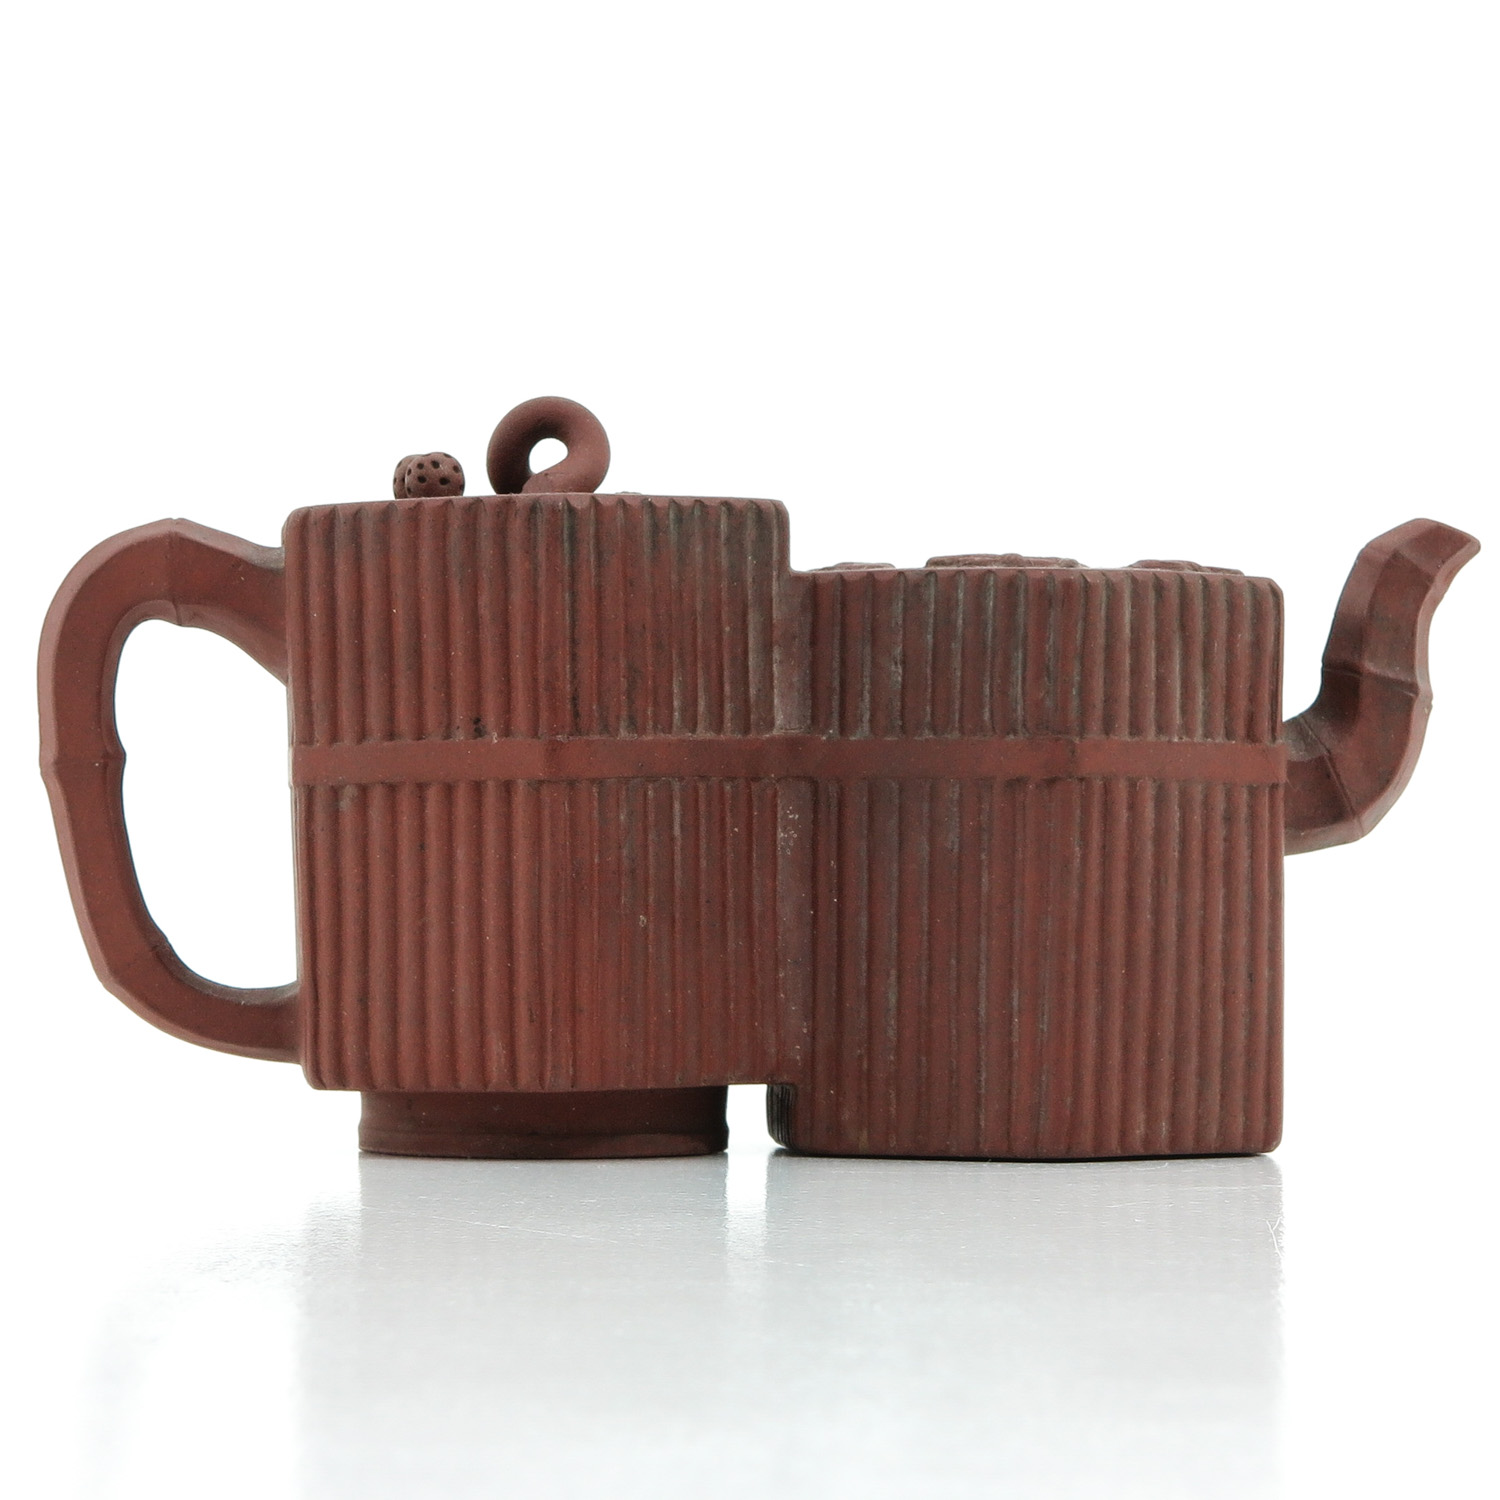 A Double Yixing Teapot - Image 3 of 9